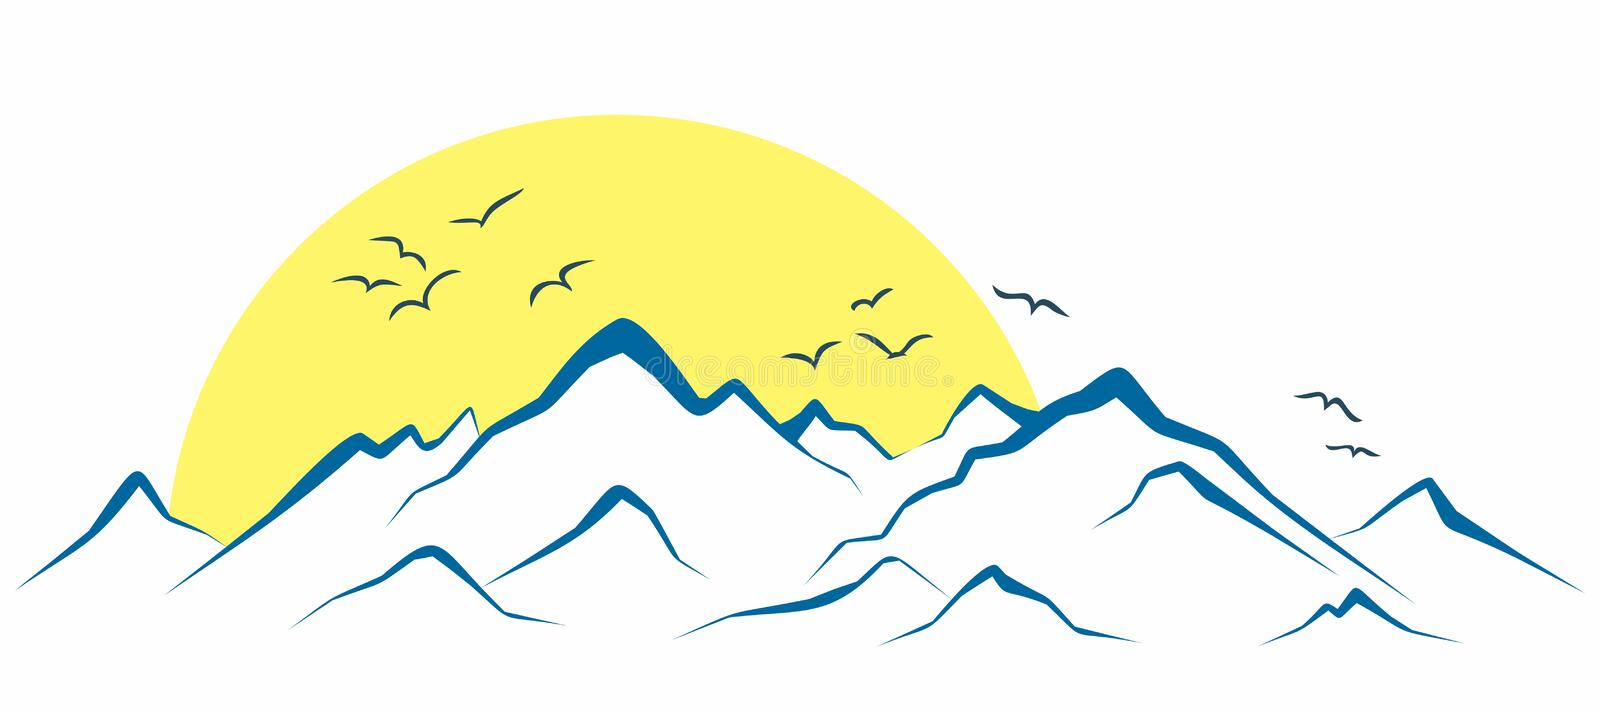 Mountains from the sun dawn. vector illustration